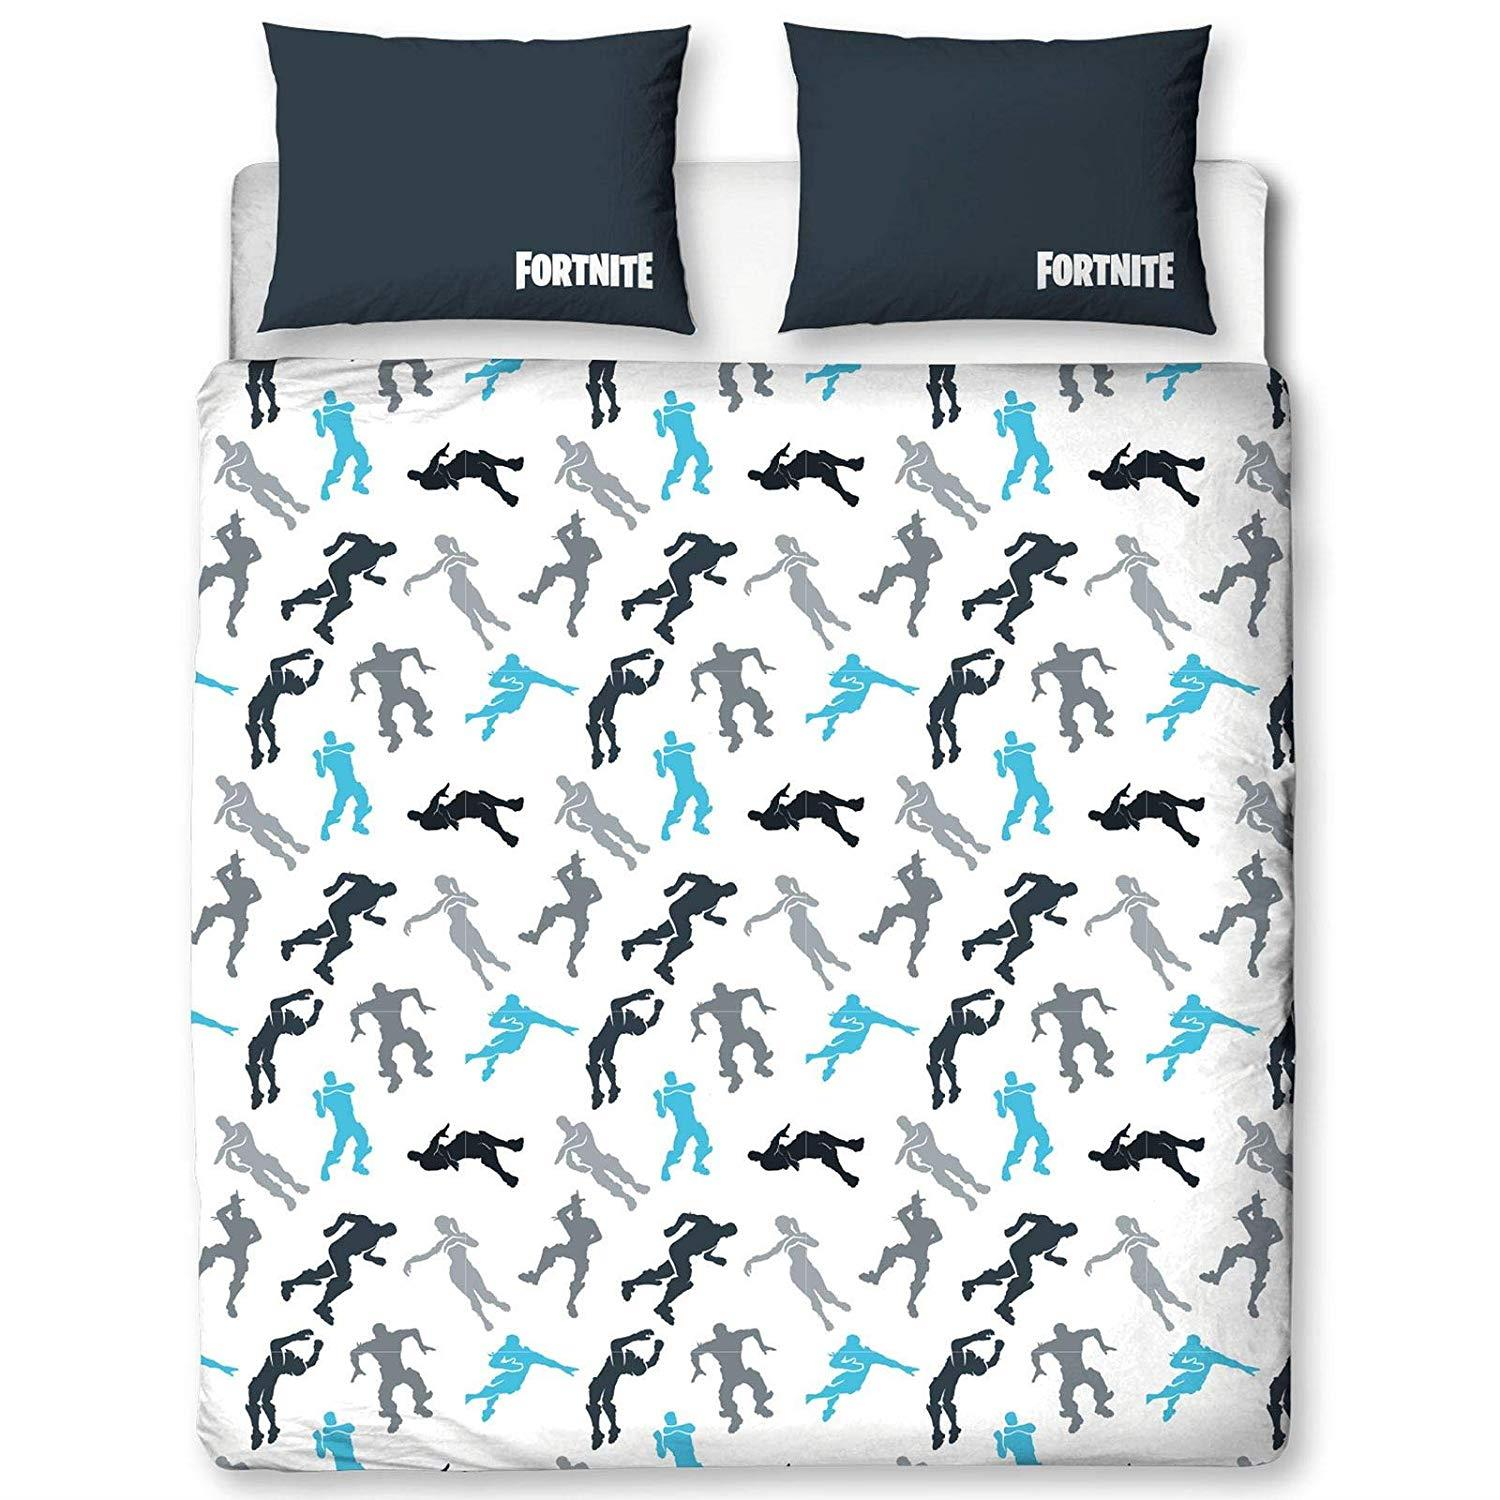 Official-FORTNITE-Licensed-Duvet-Covers-Single-Double-Emotes-LLama-Bedding thumbnail 4